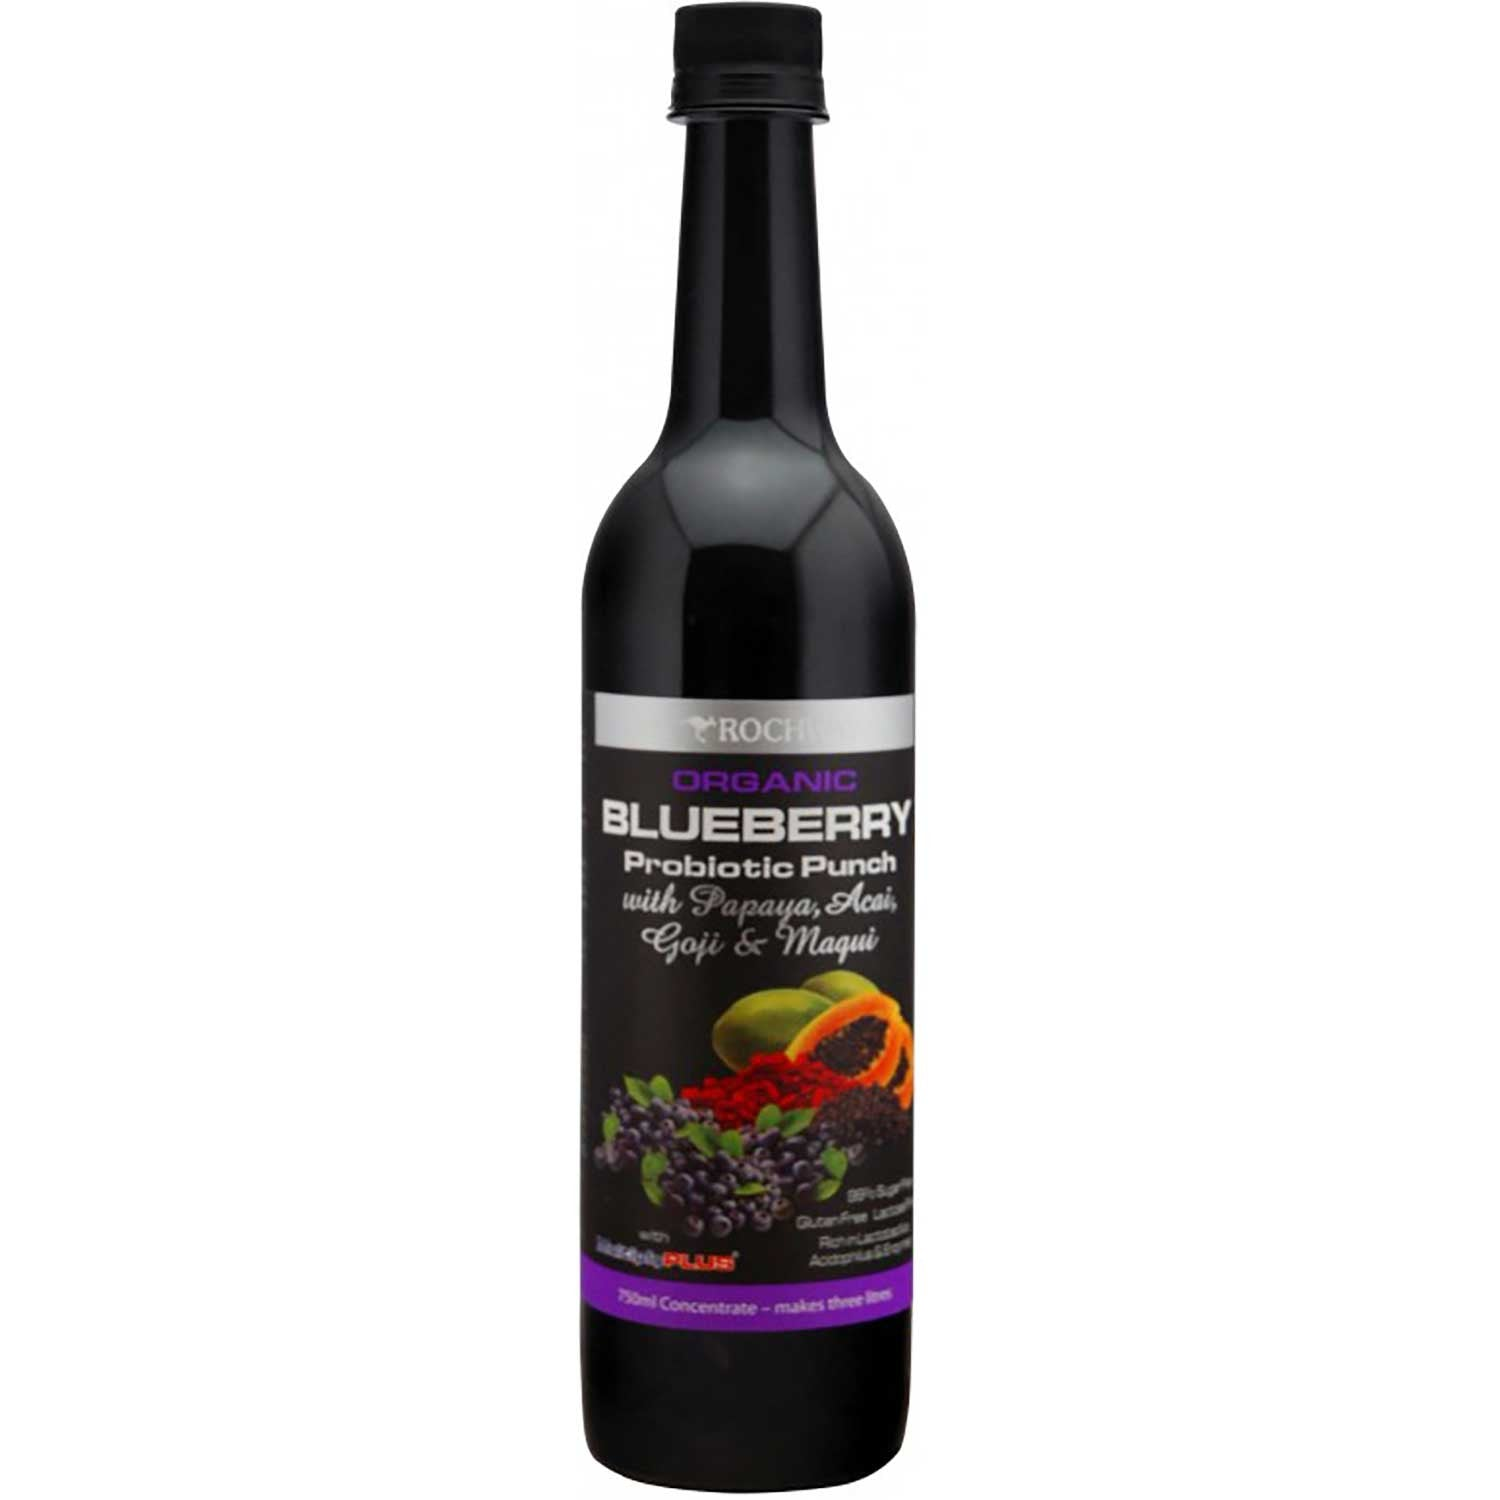 Rochway Organic Blueberry Probiotic Punch w/Papaya, Acai, Goji & Maqui, 750ml.-NaturesWisdom